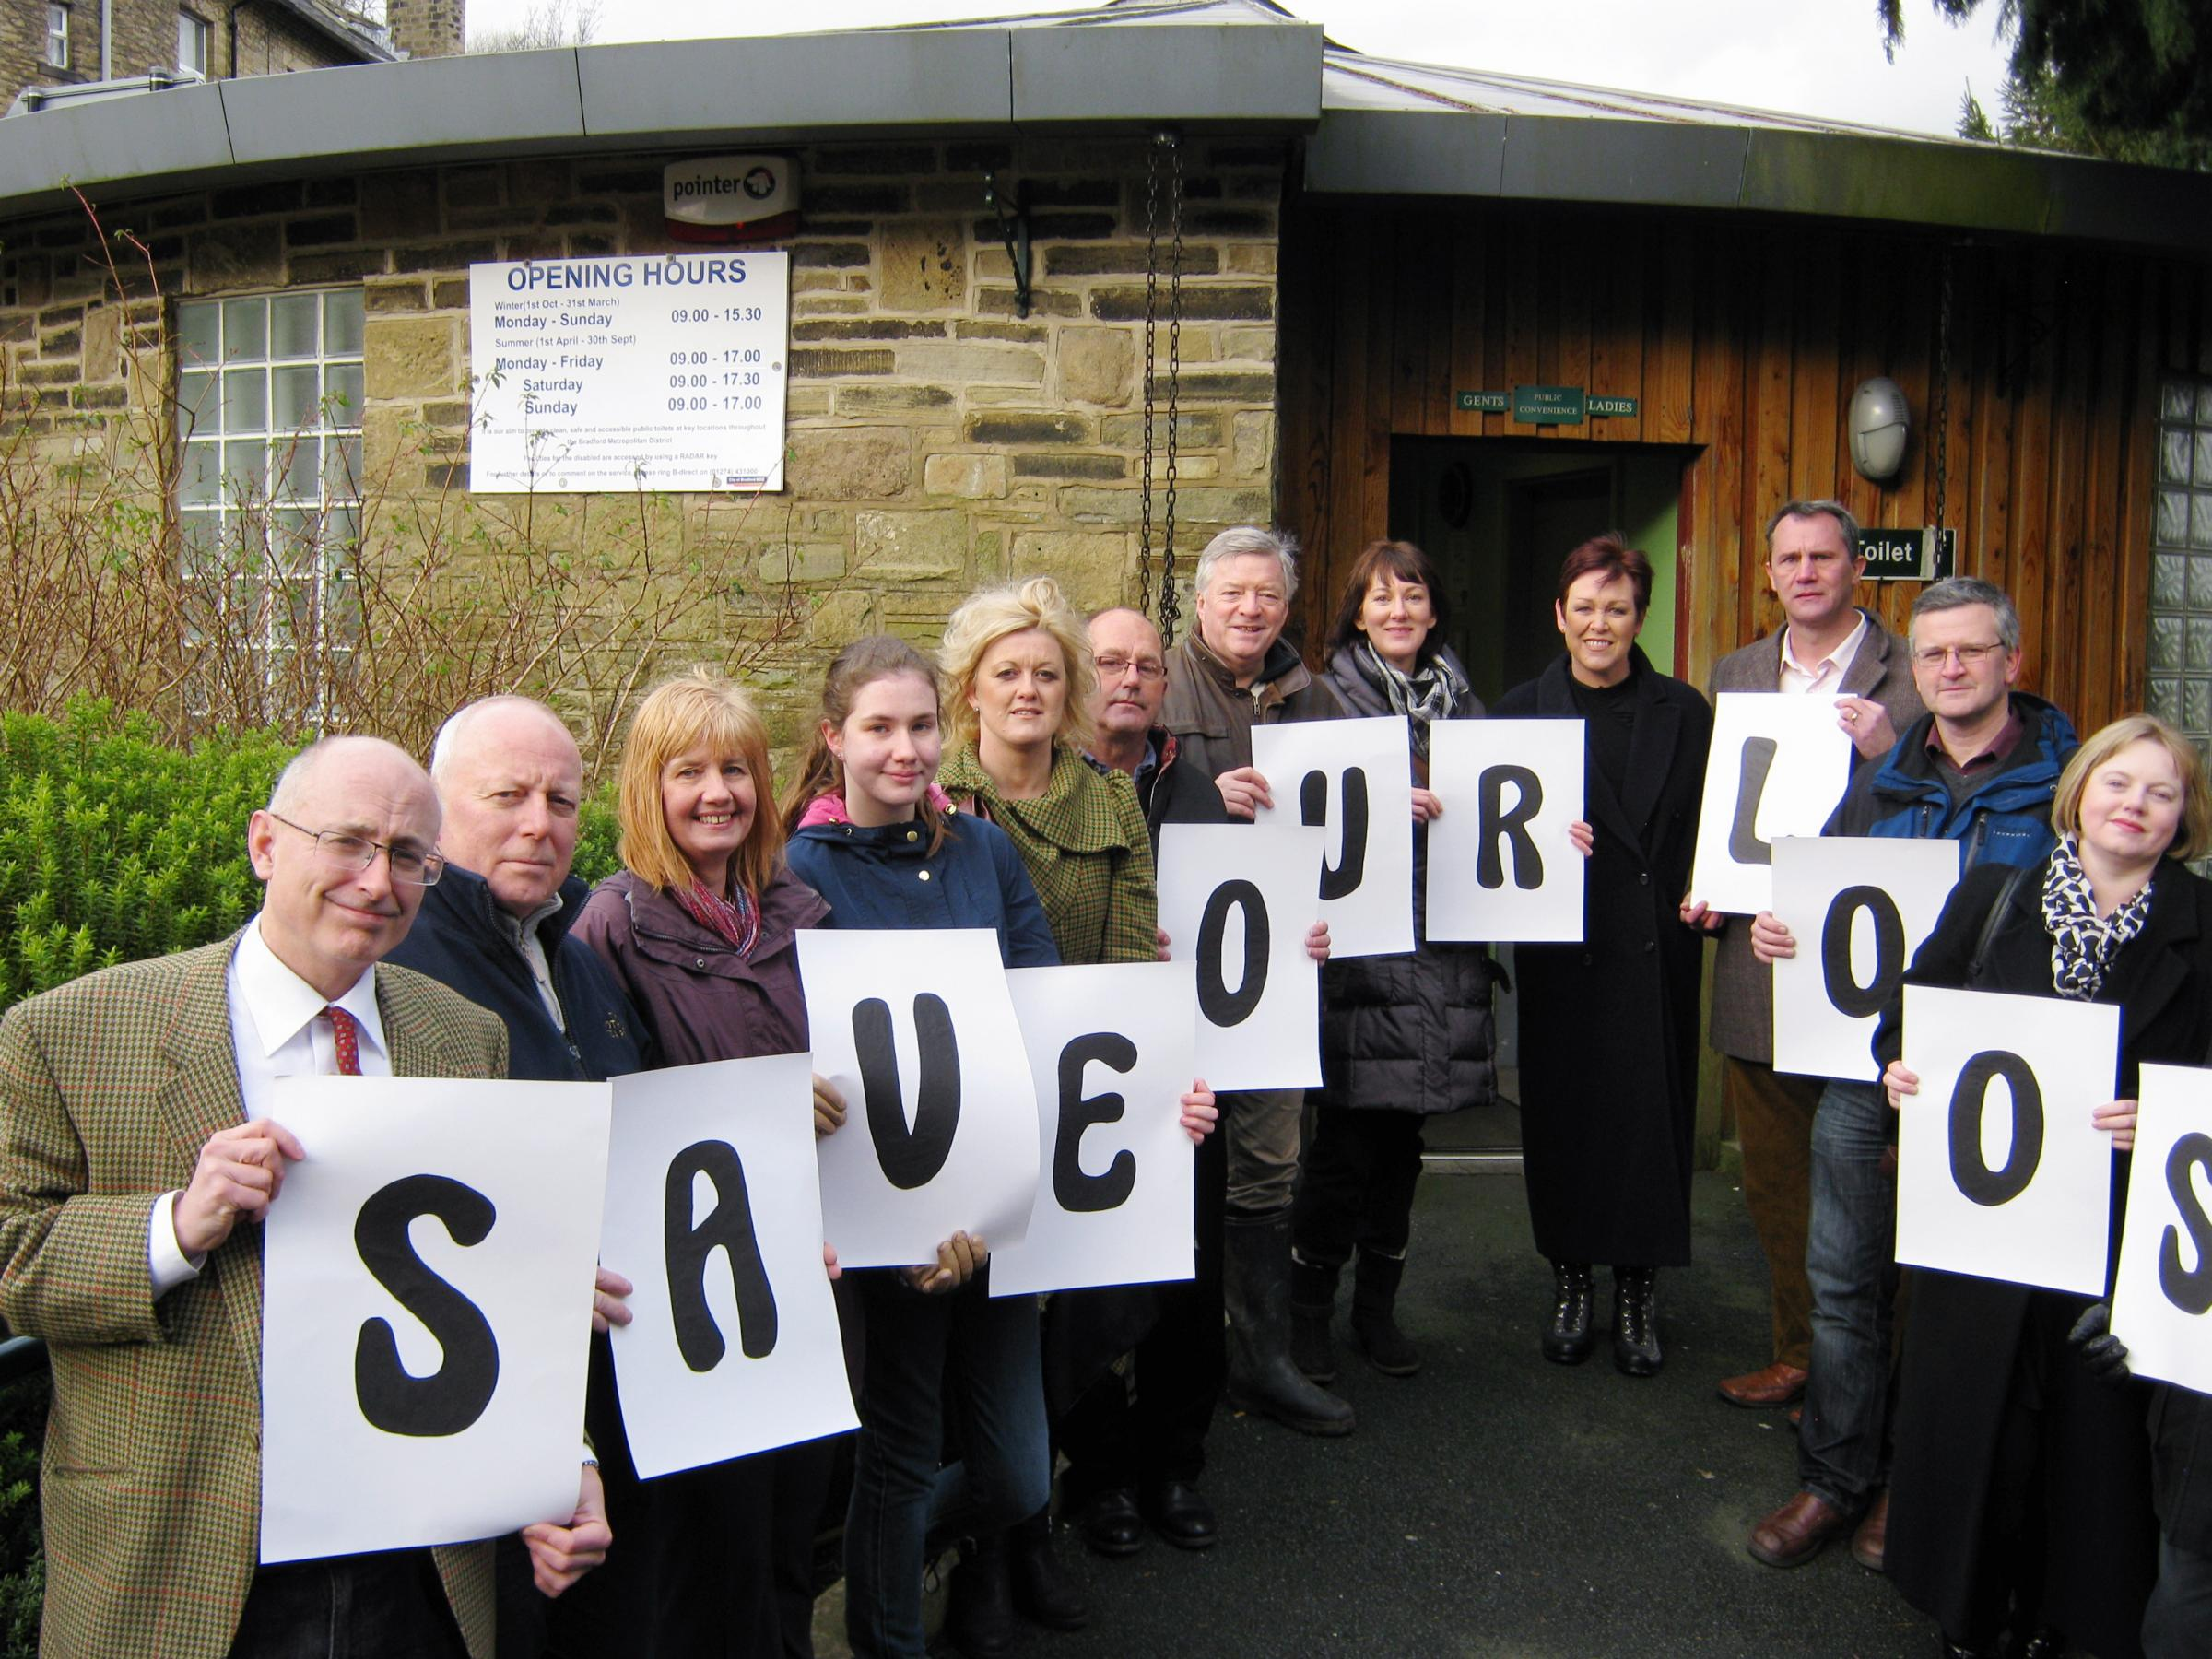 Haworth residents and business leaders during their campaign to save the village's public toilets, which they now look to have now won